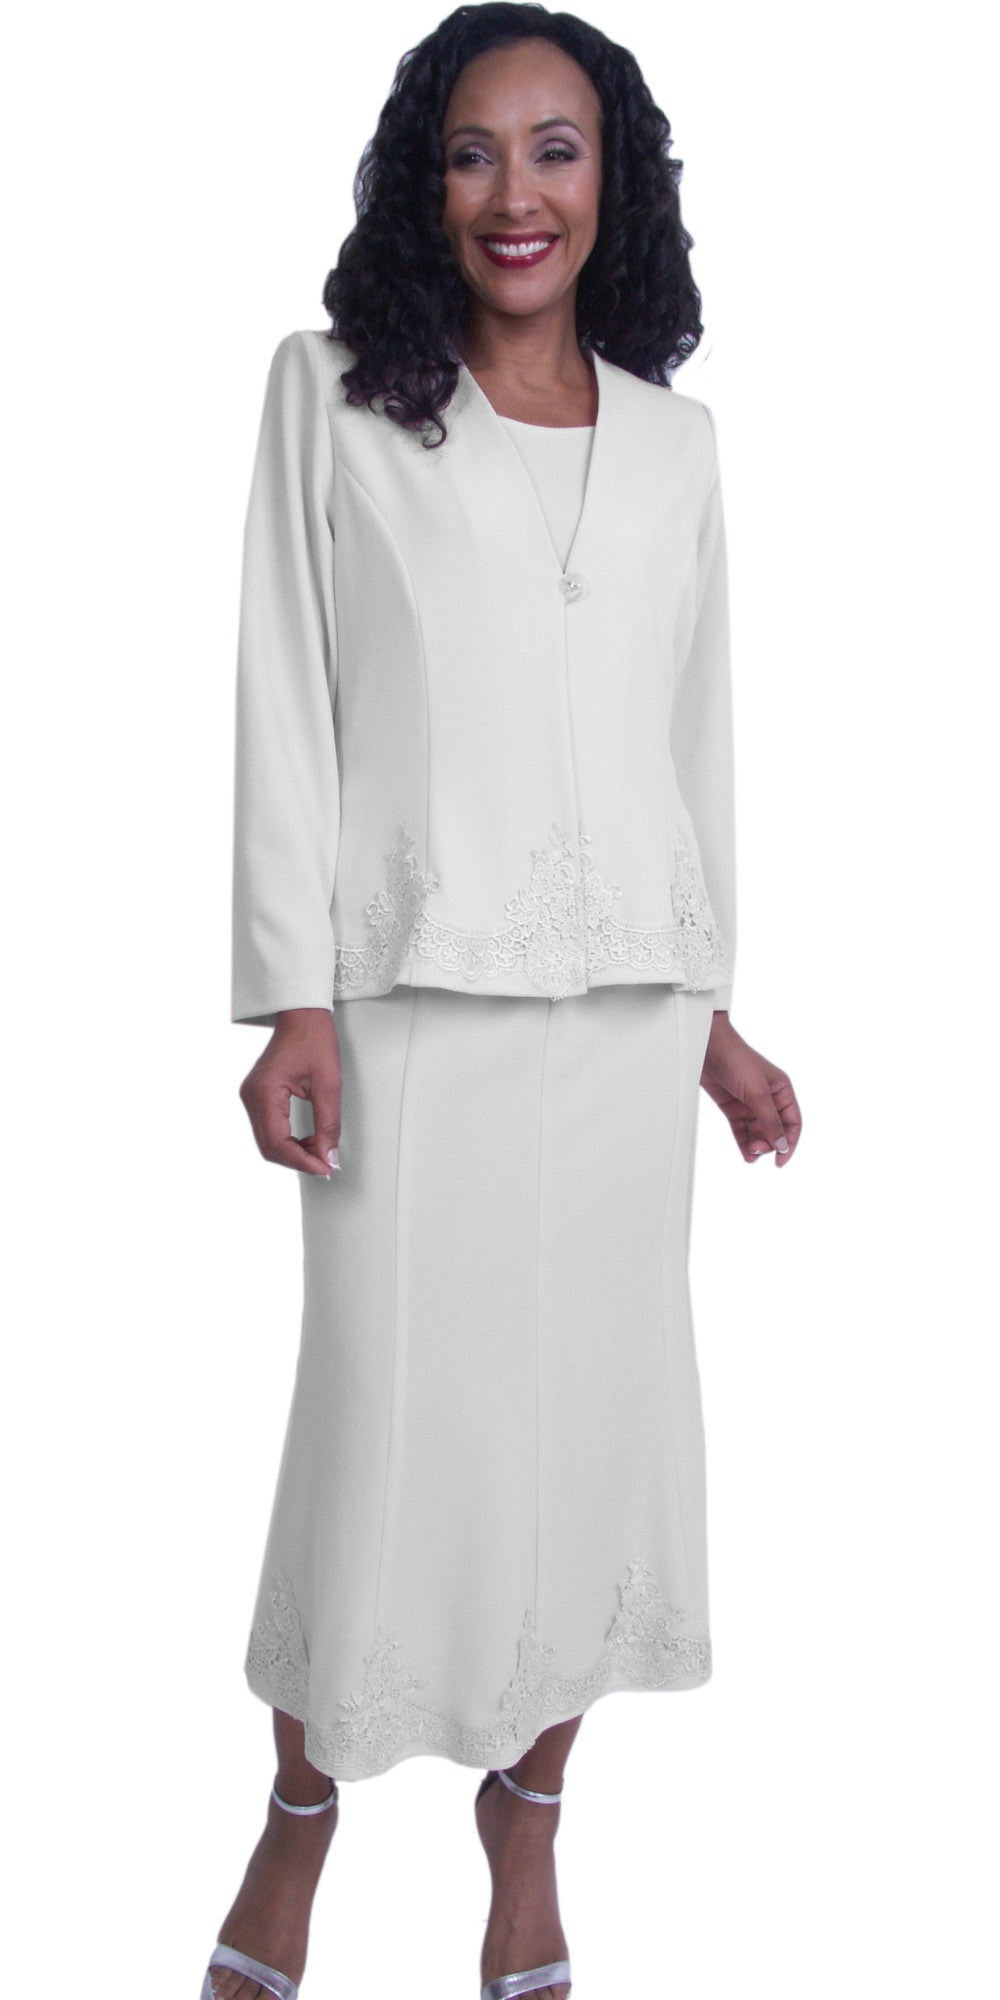 Off White Embroidered Jacket and Skirt Modest Tea-Length Dress